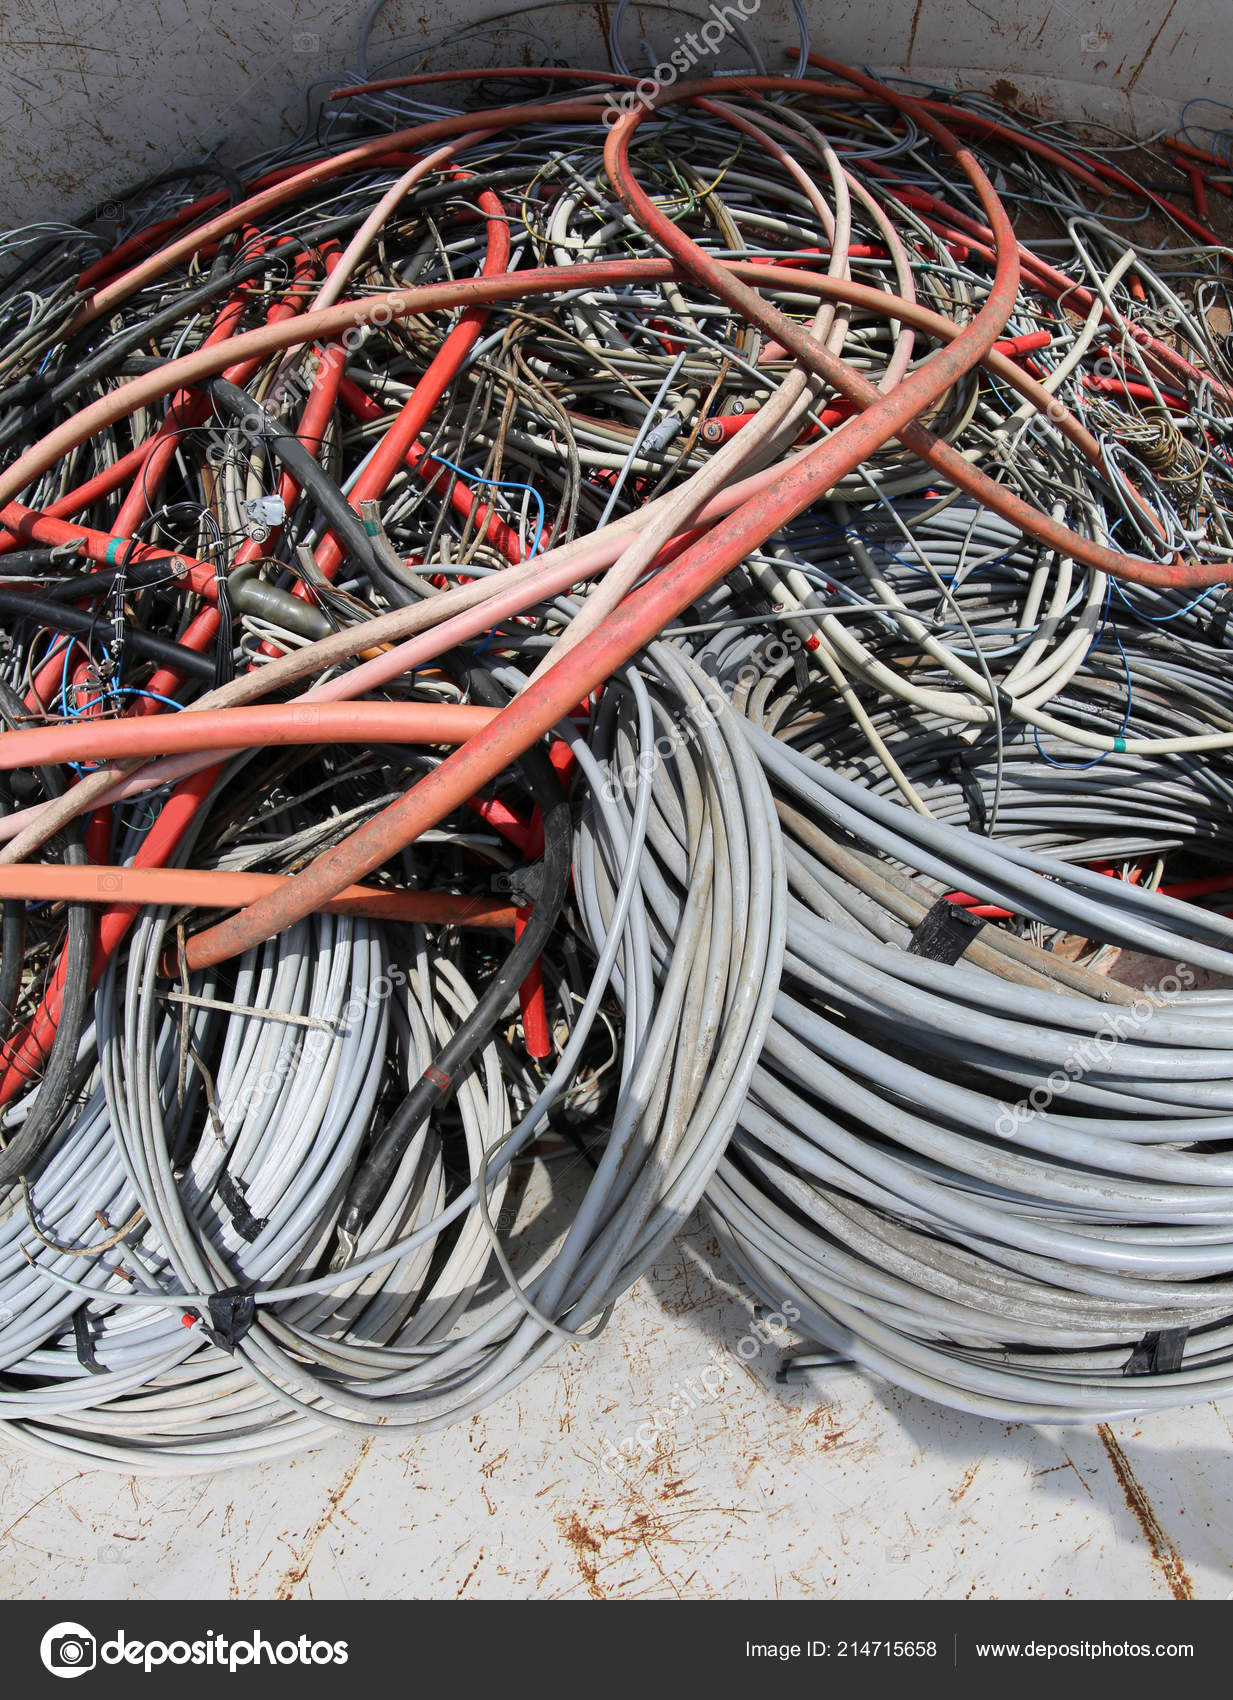 Many Used Electrical Cables High Voltage Wires Container ... High Voltage Wiring on